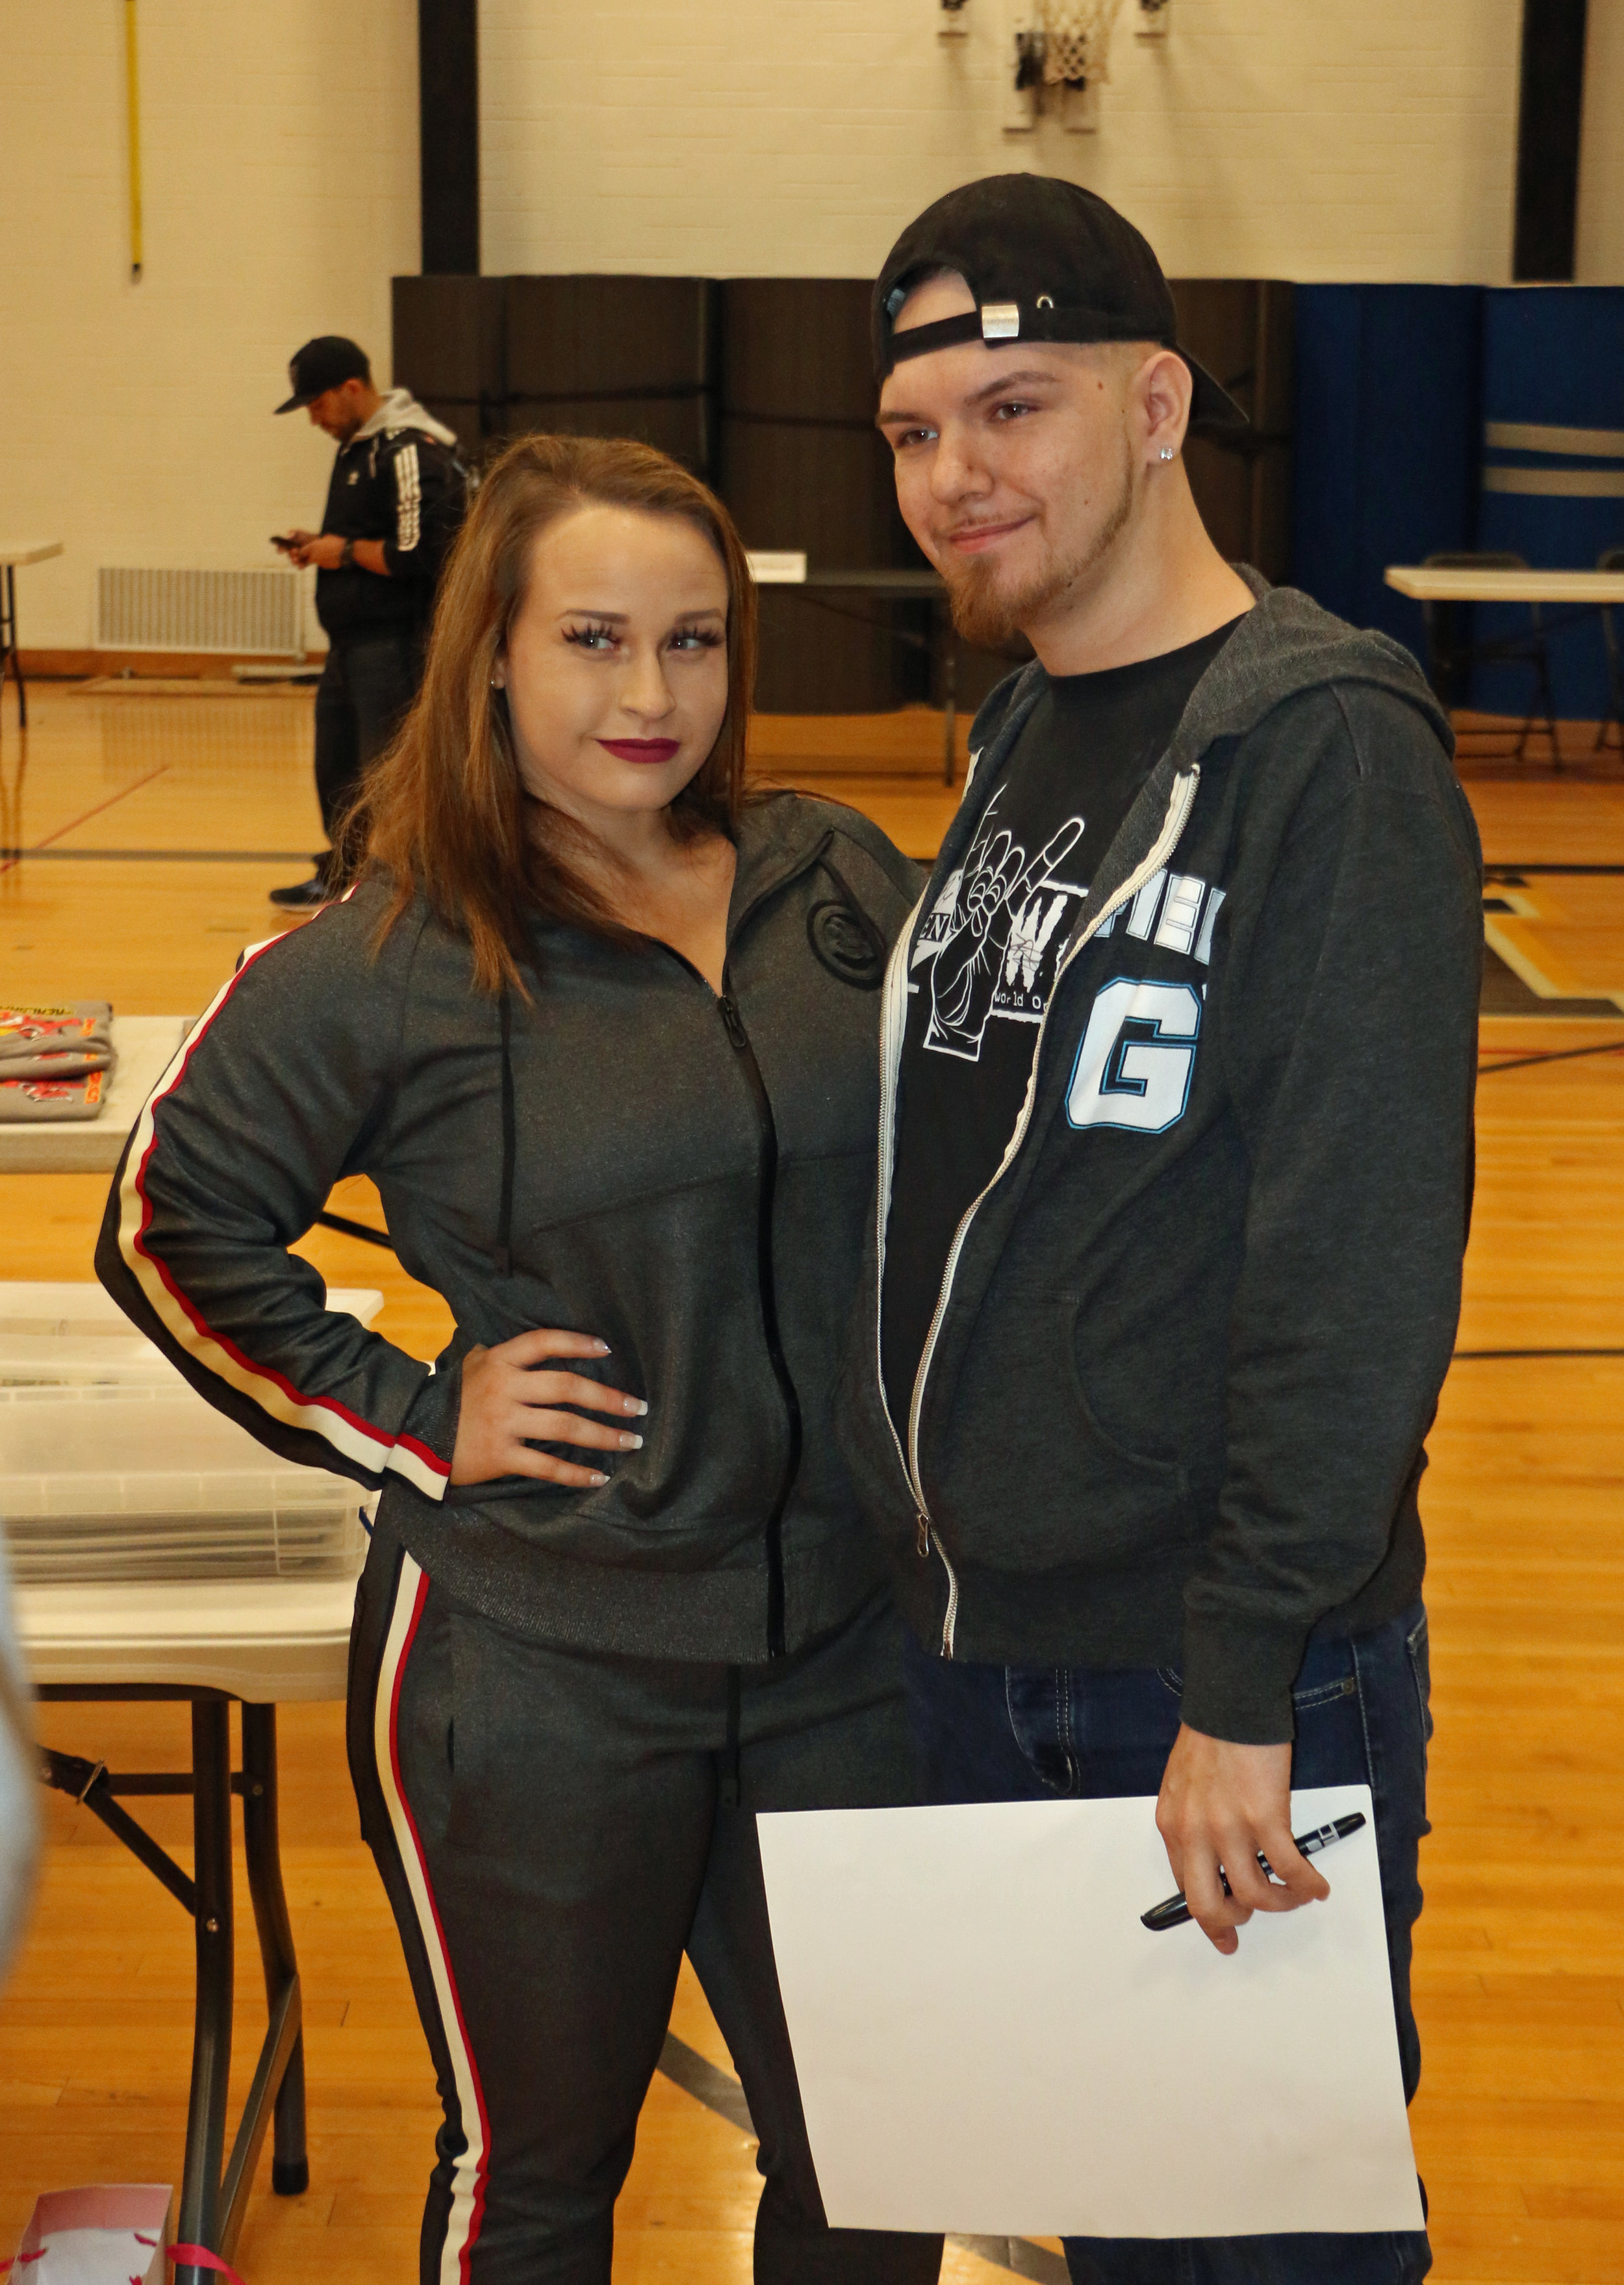 Jordynne Grace takes a picture with a fan during the Warrior Wrestling 5 VIP Fan Fest.